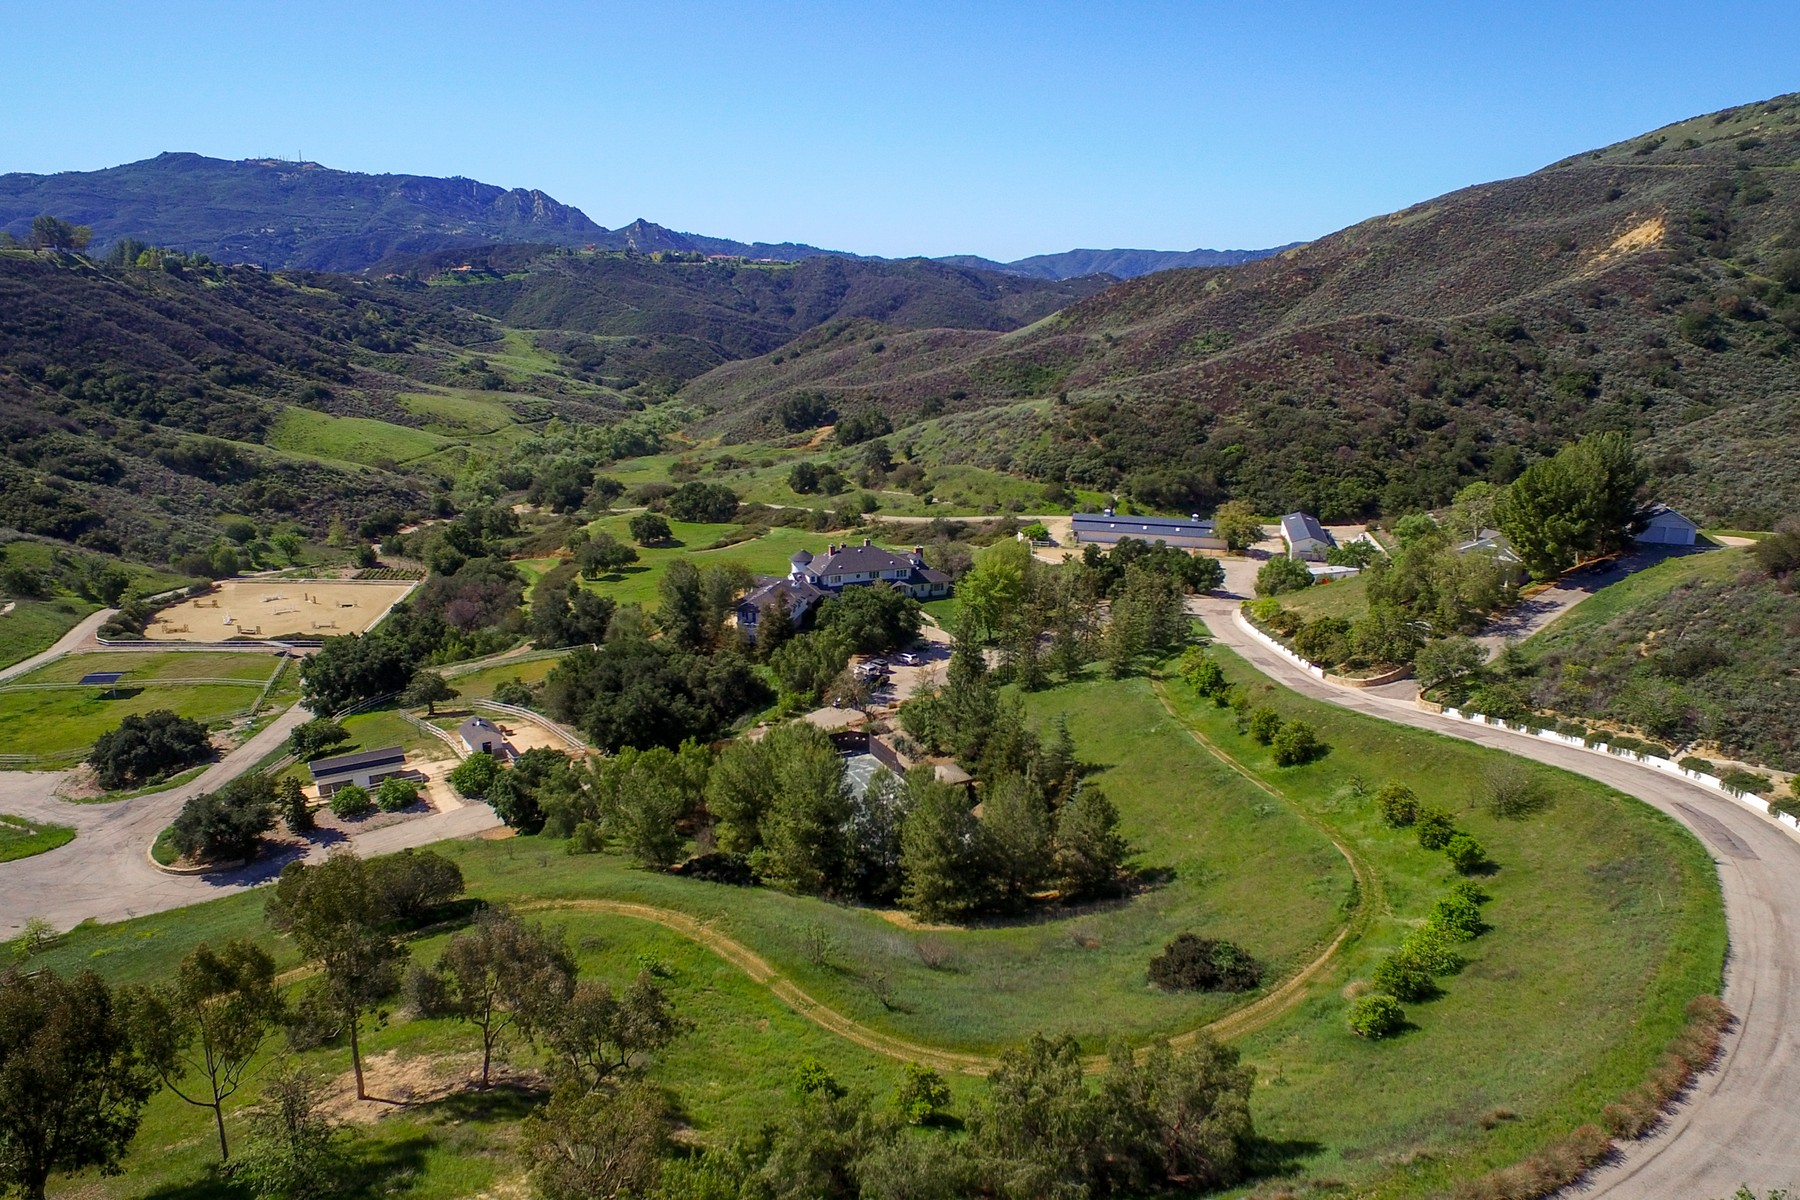 Single Family Home for Sale at Paseo Del Rancho 24900 Paseo Del Rancho Calabasas, California, 91302 United States